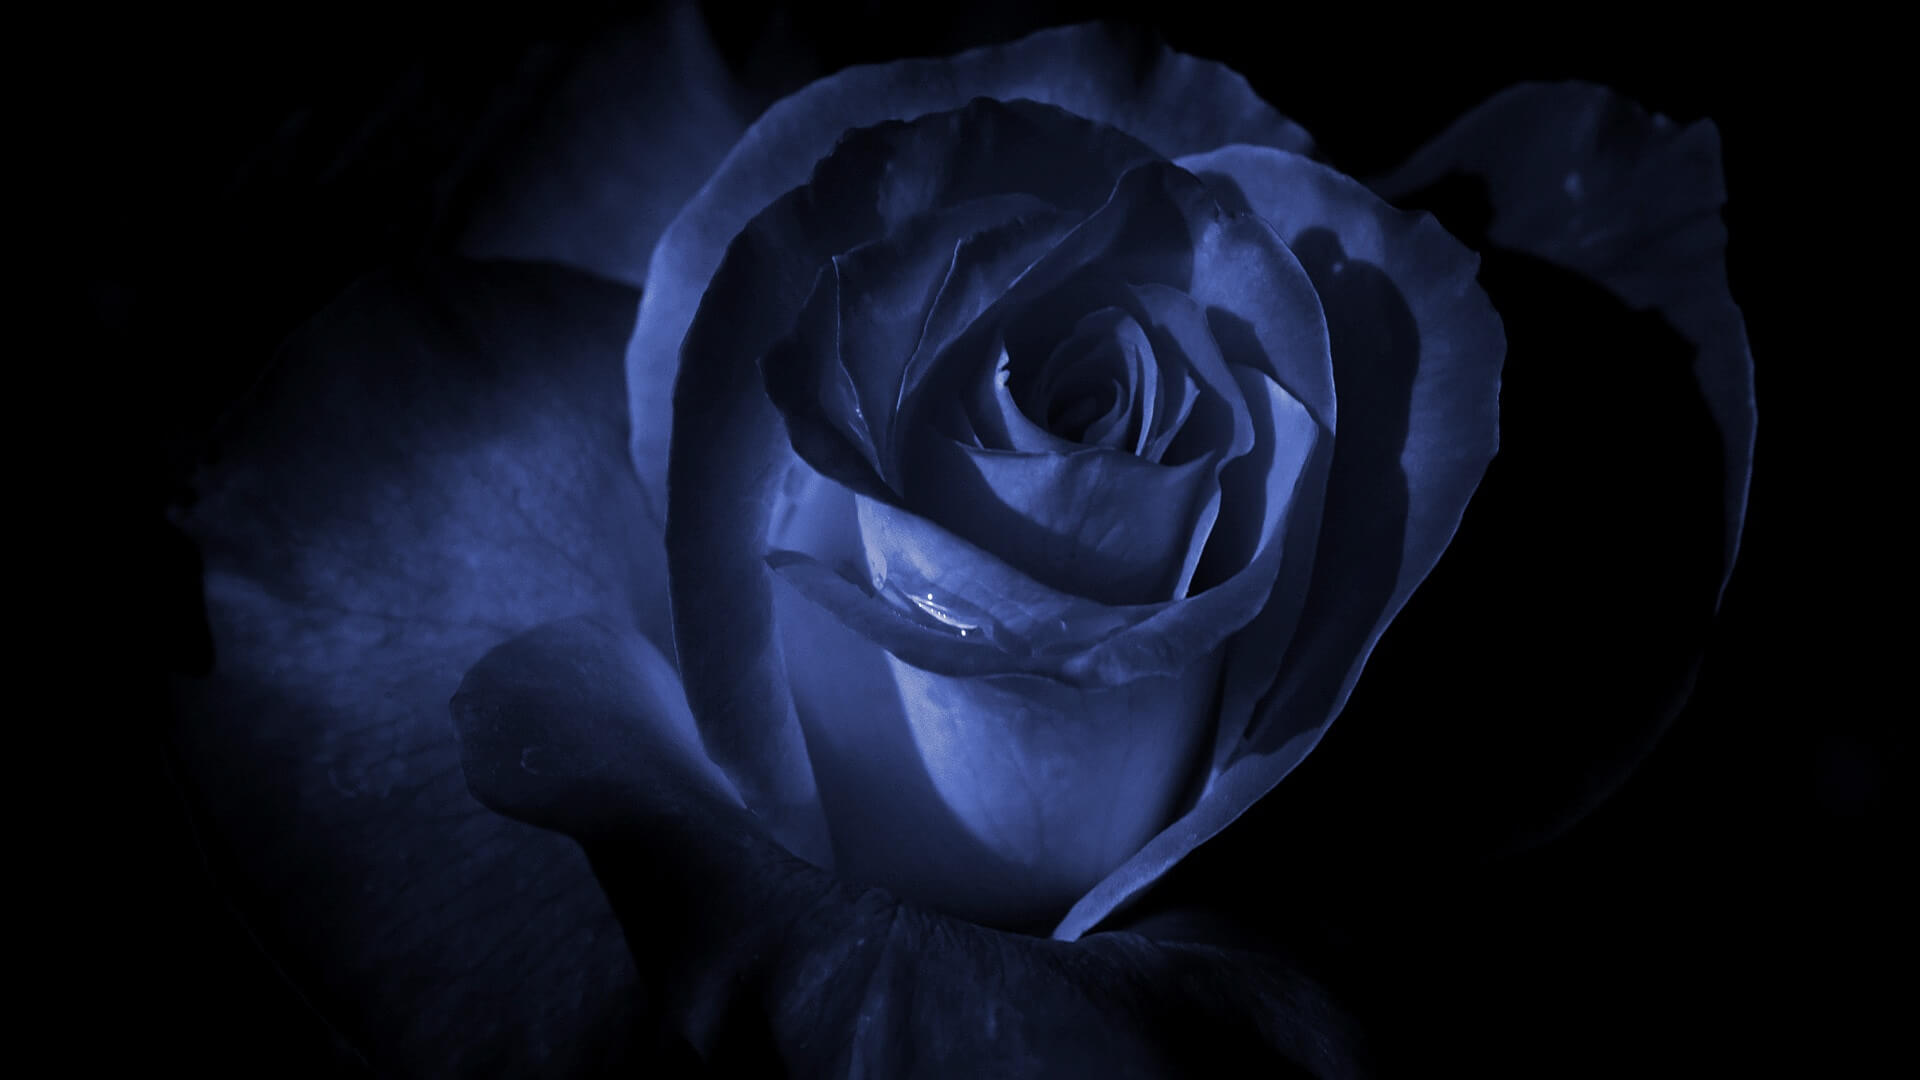 blue_rose_in_the_dark